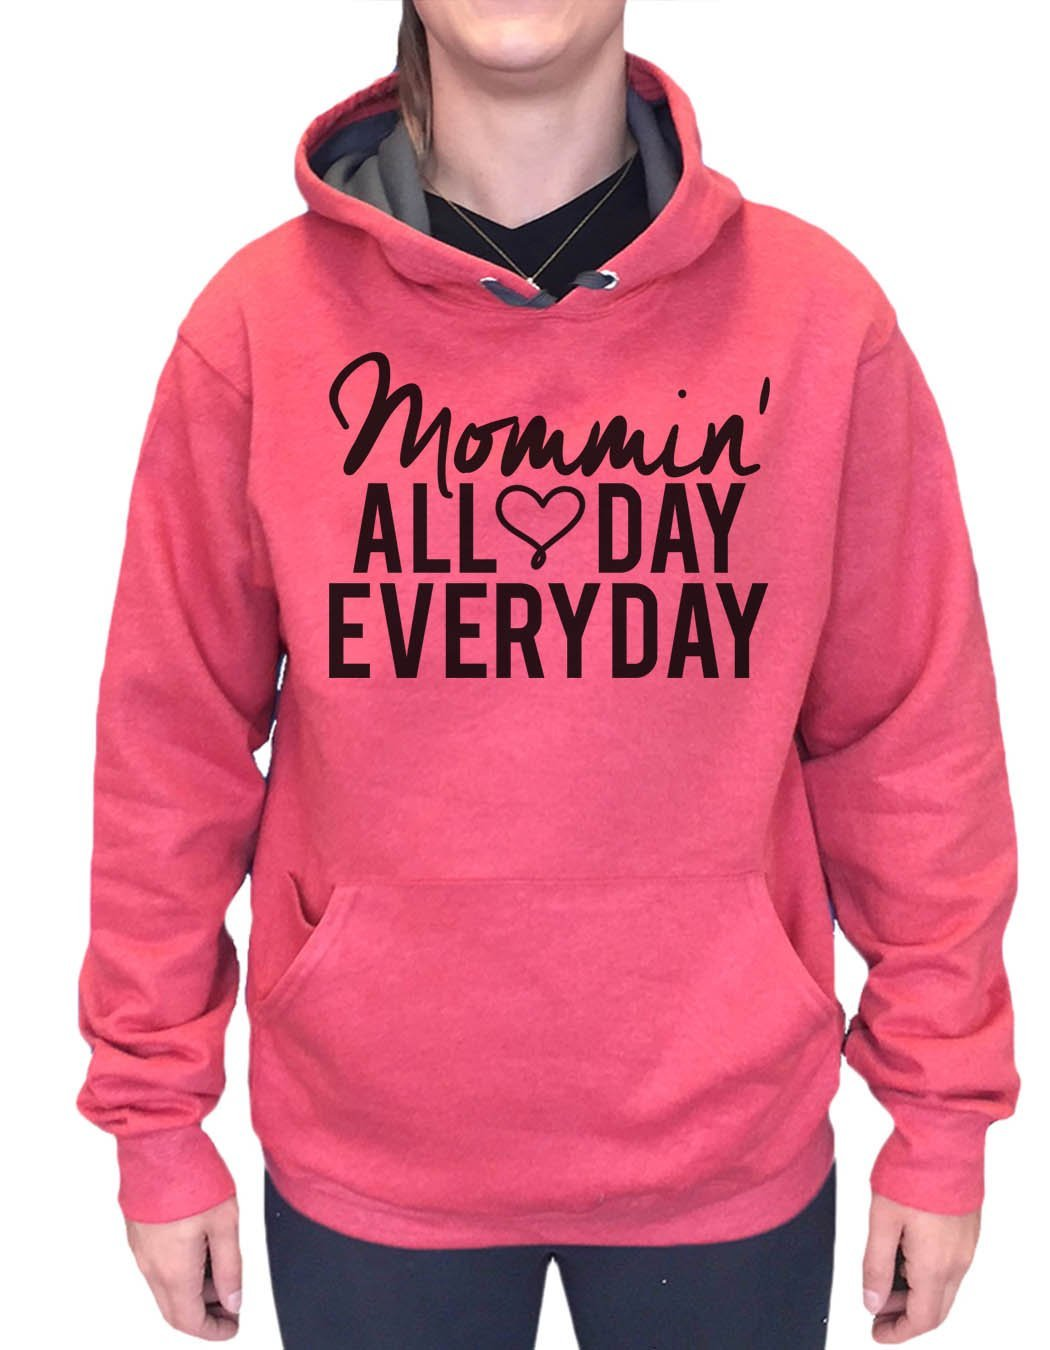 UNISEX HOODIE - Mommin' All Day Every Day - FUNNY MENS AND WOMENS HOODED SWEATSHIRTS - 2143 Funny Shirt Small / Cranberry Red